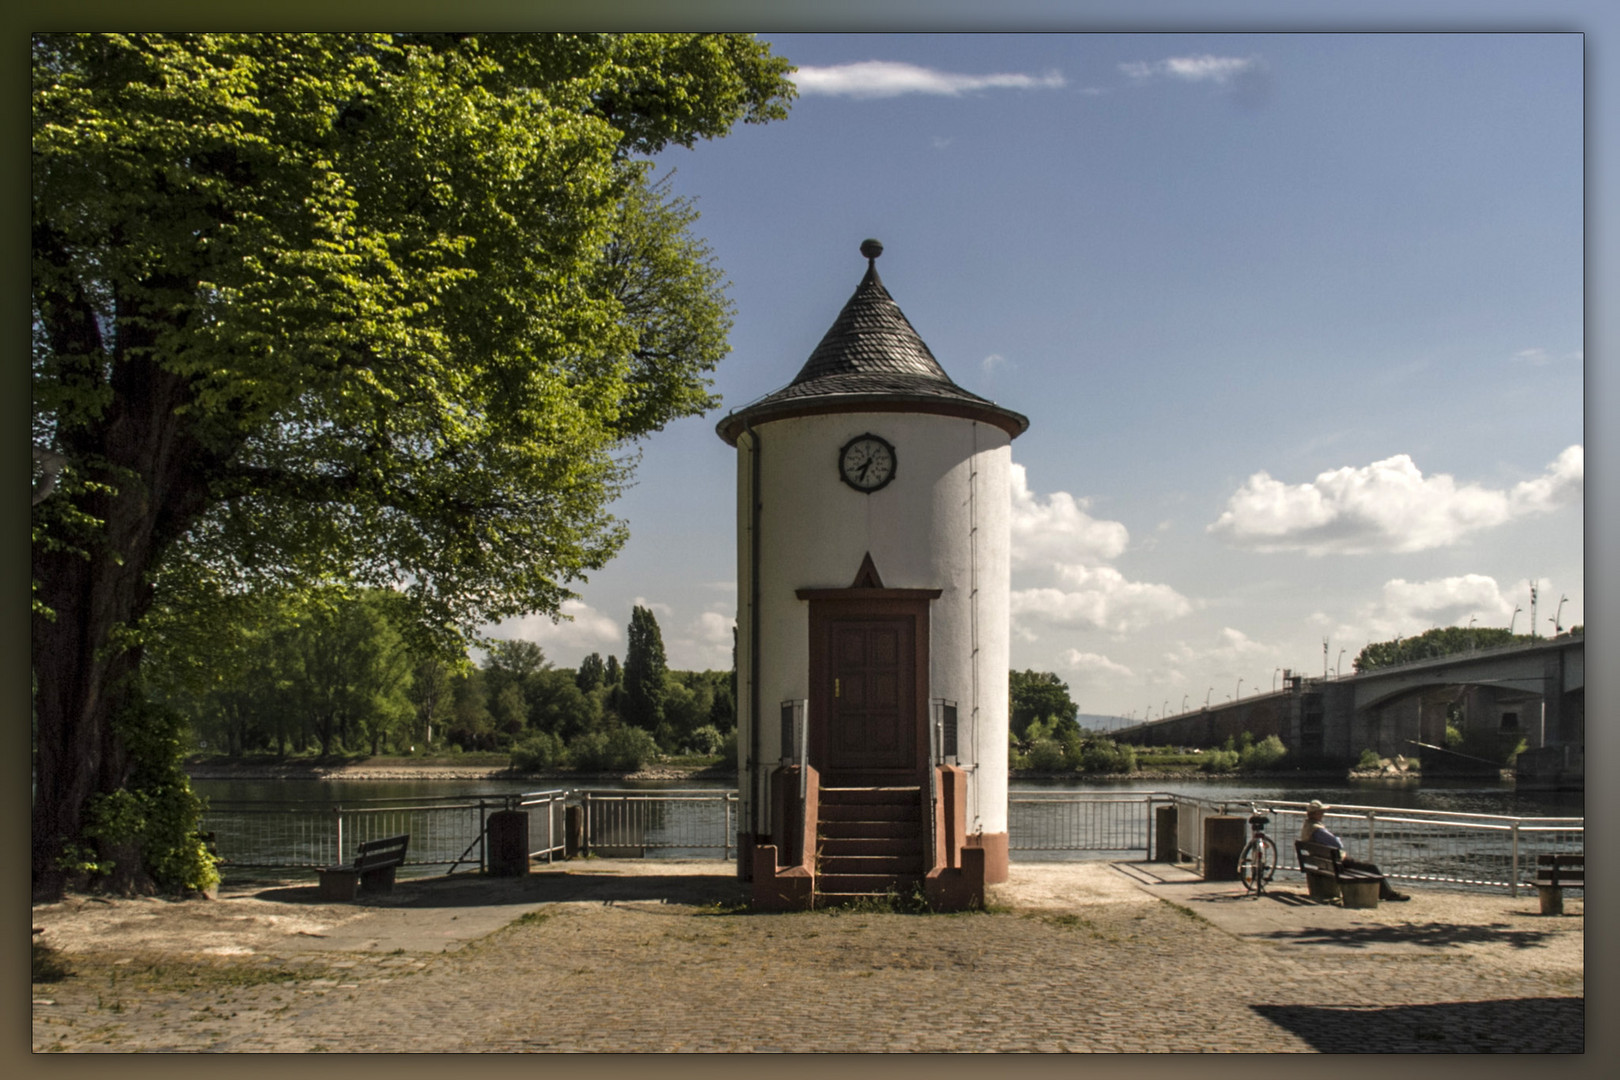 AM RHEIN IN WORMS